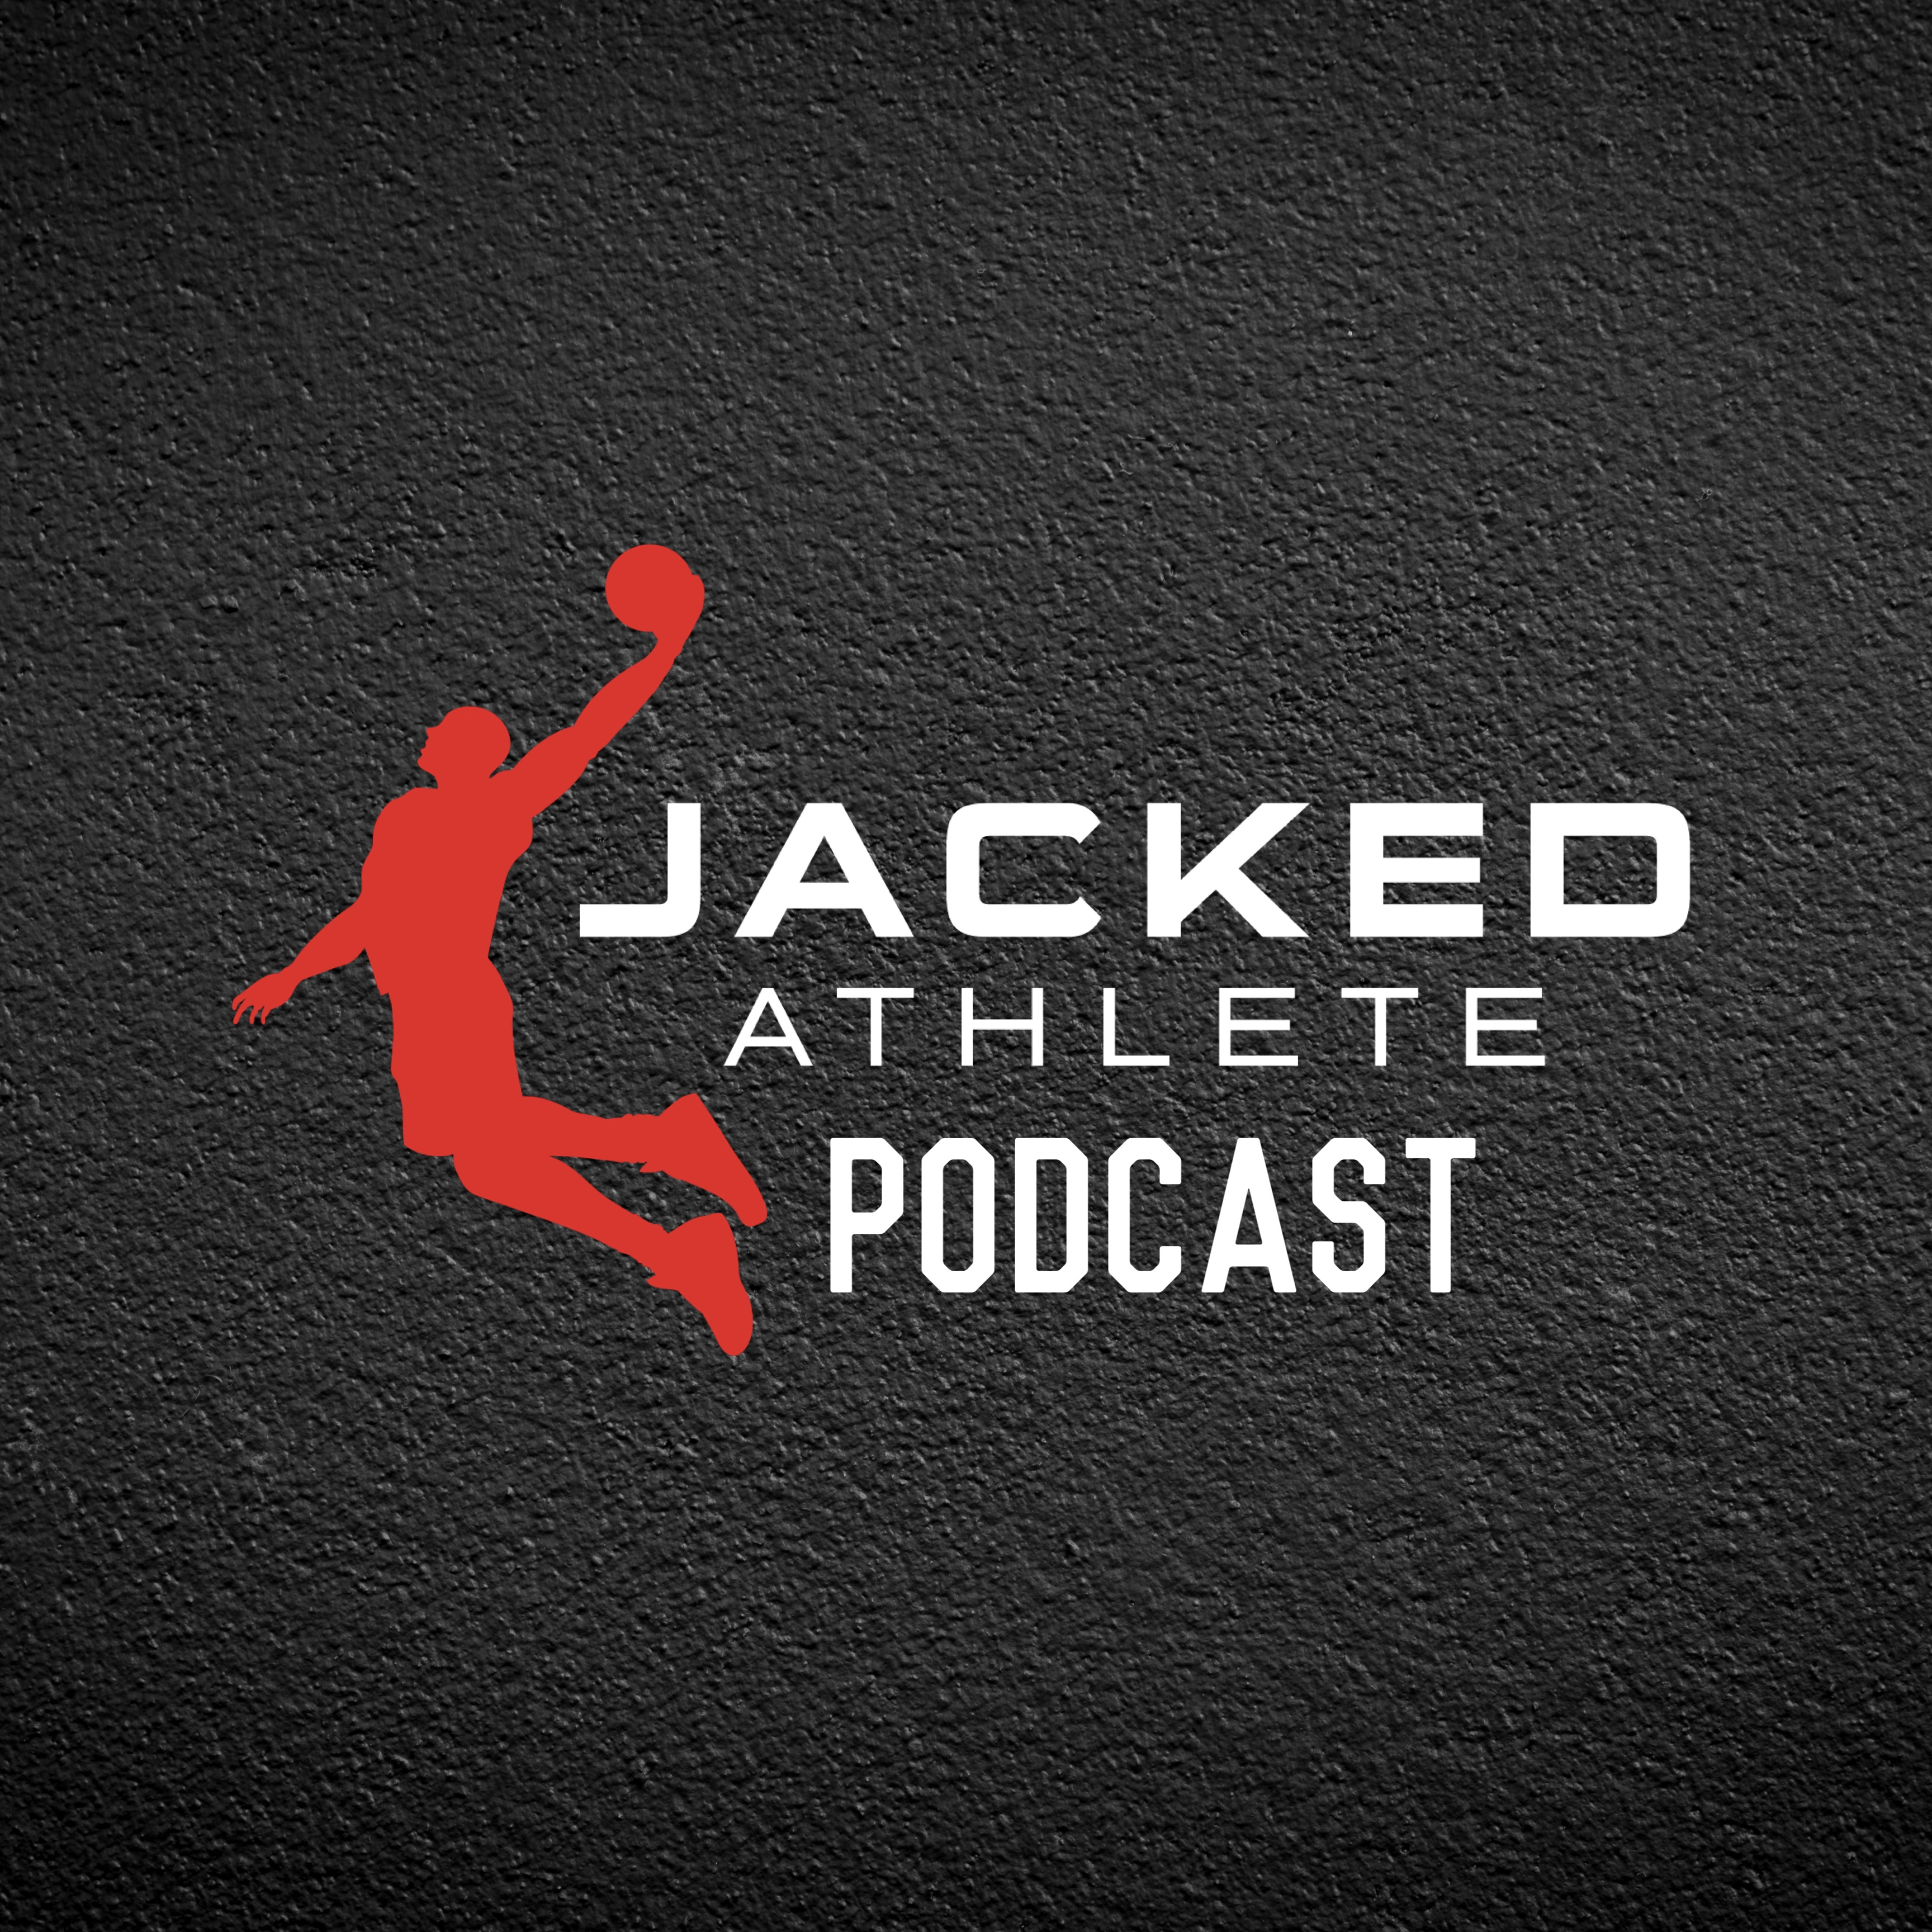 Podcast #3: Patrick Peterson on Sports Science, Intervention